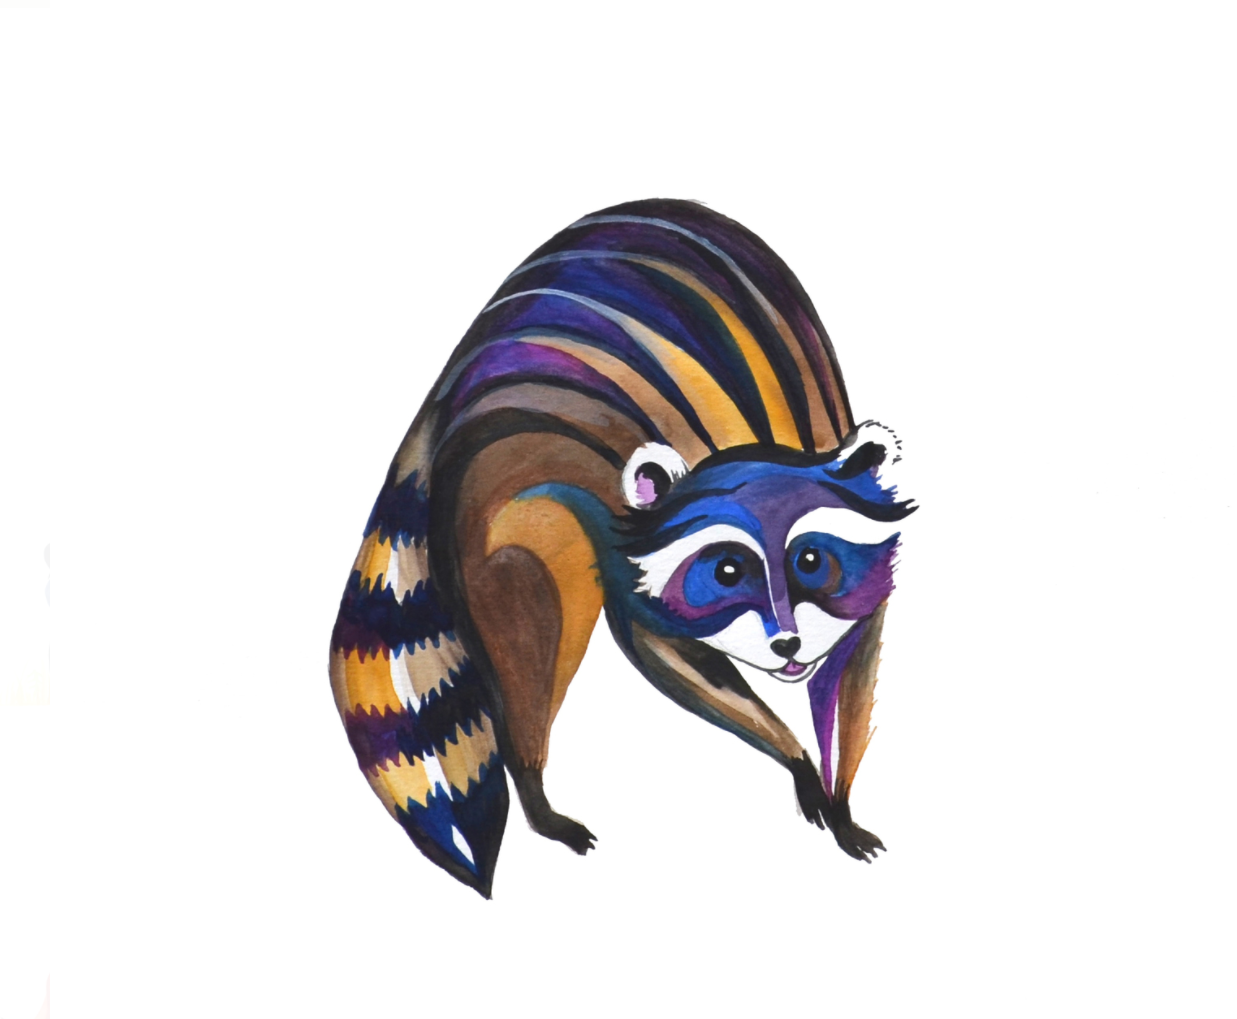 Racoon  watercolour on Fabriano CP paper  nine inches x nine inches  2014